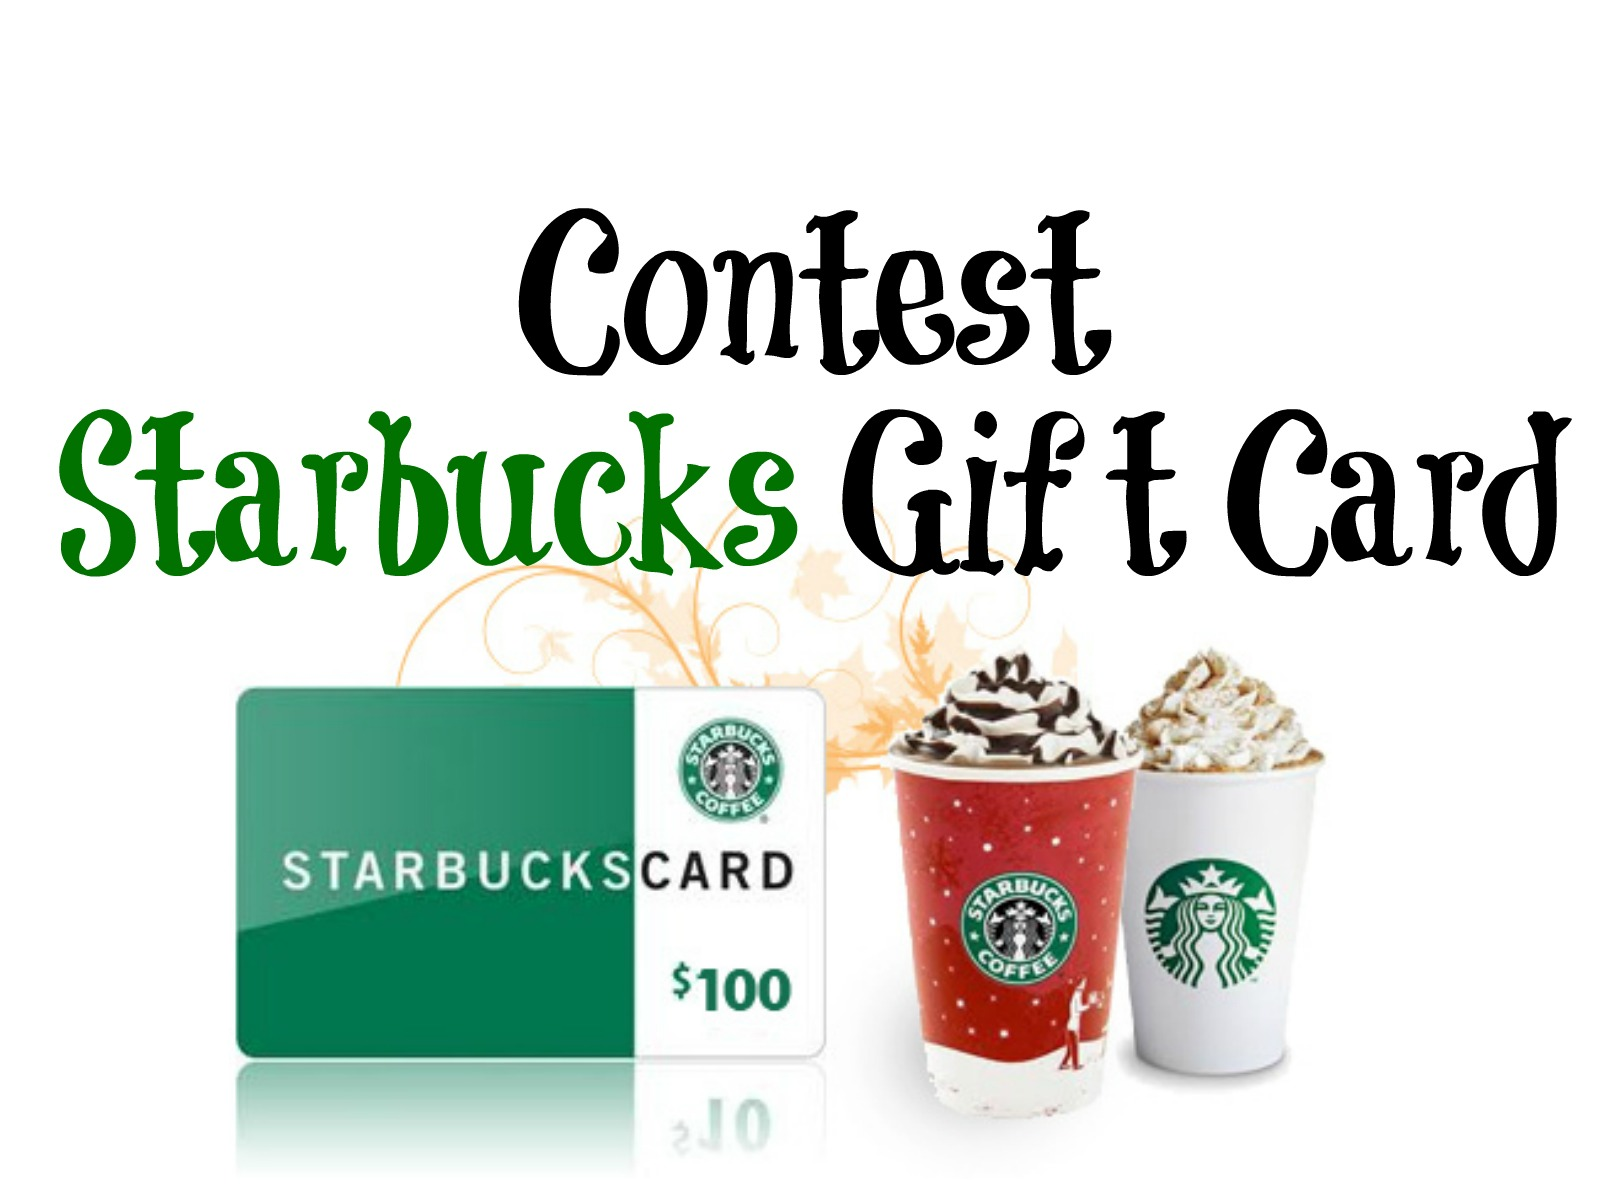 Contest: $100 Starbucks Gift Card